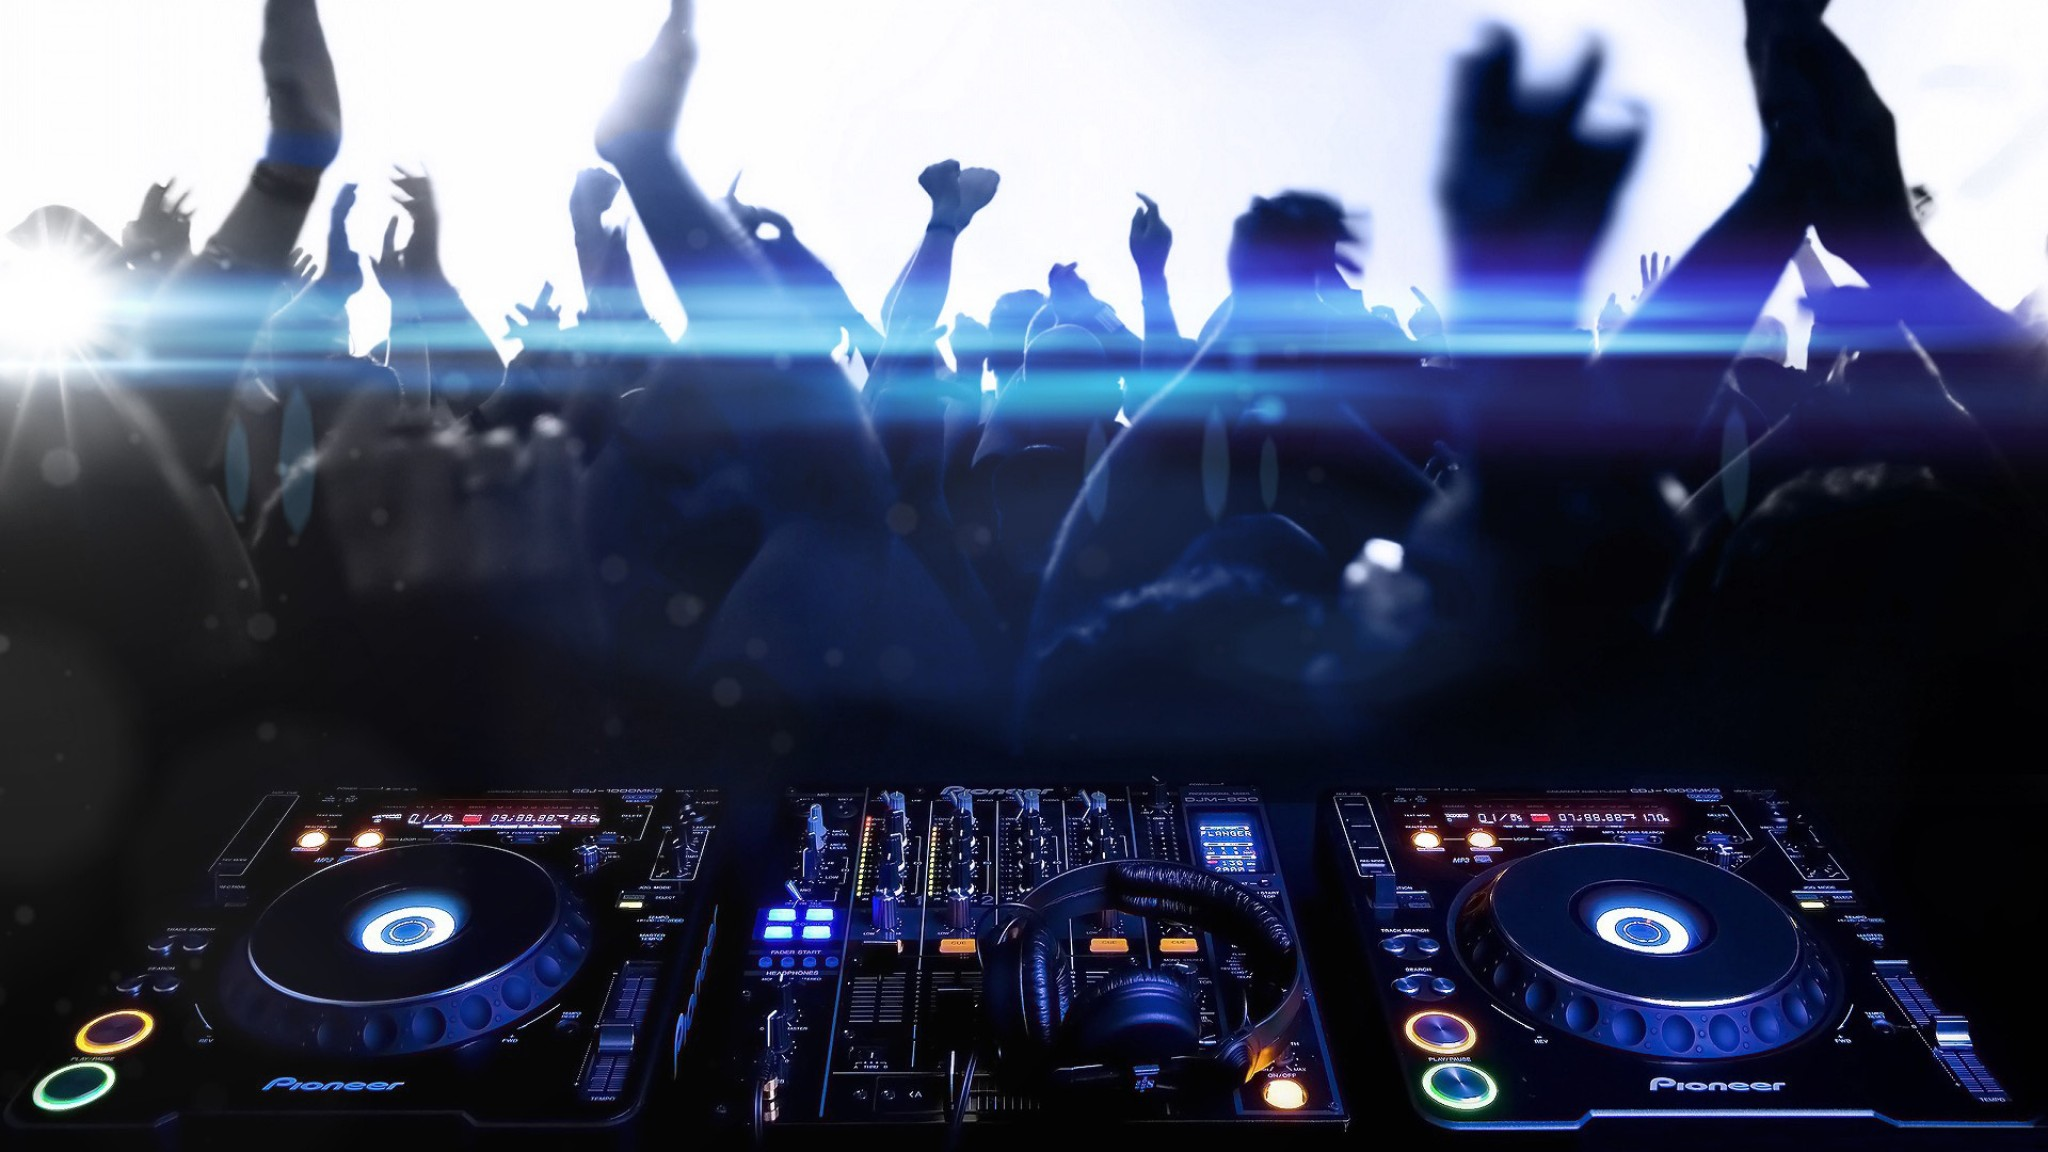 Pioneer DJ Equipment Full HD Wallpaper and Background 2048x1152